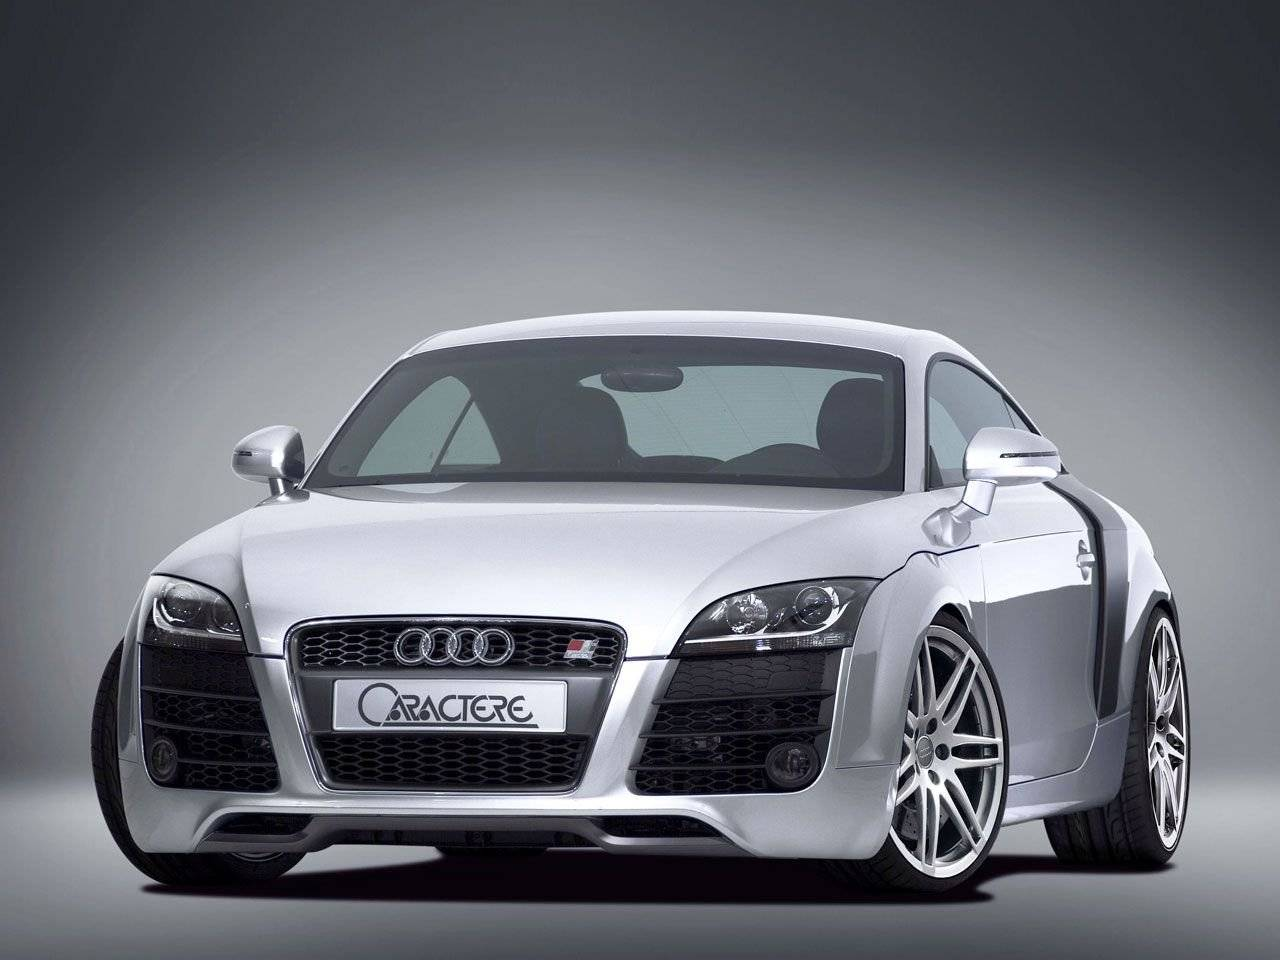 audi tt met r8 look van caractere tuning styling. Black Bedroom Furniture Sets. Home Design Ideas